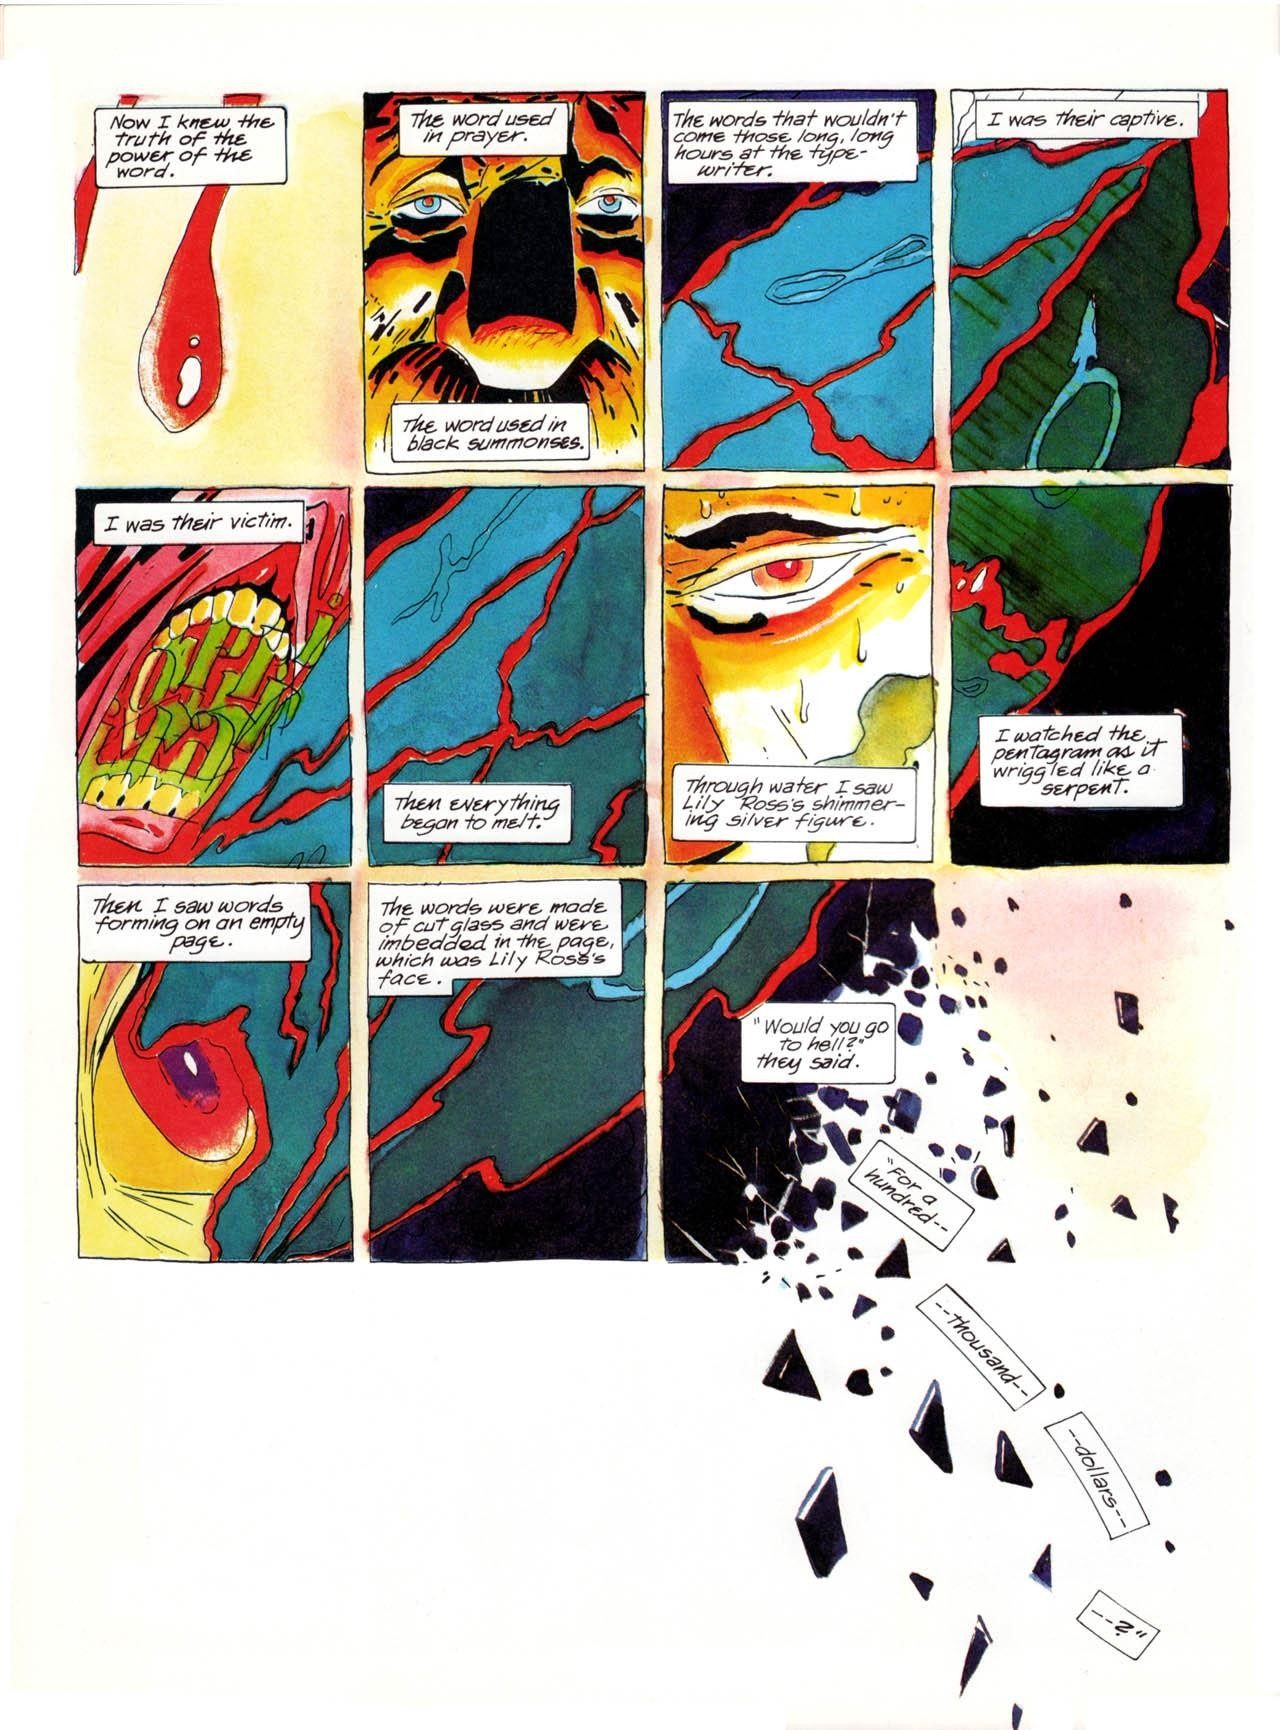 Hell on Earth Keith Giffen